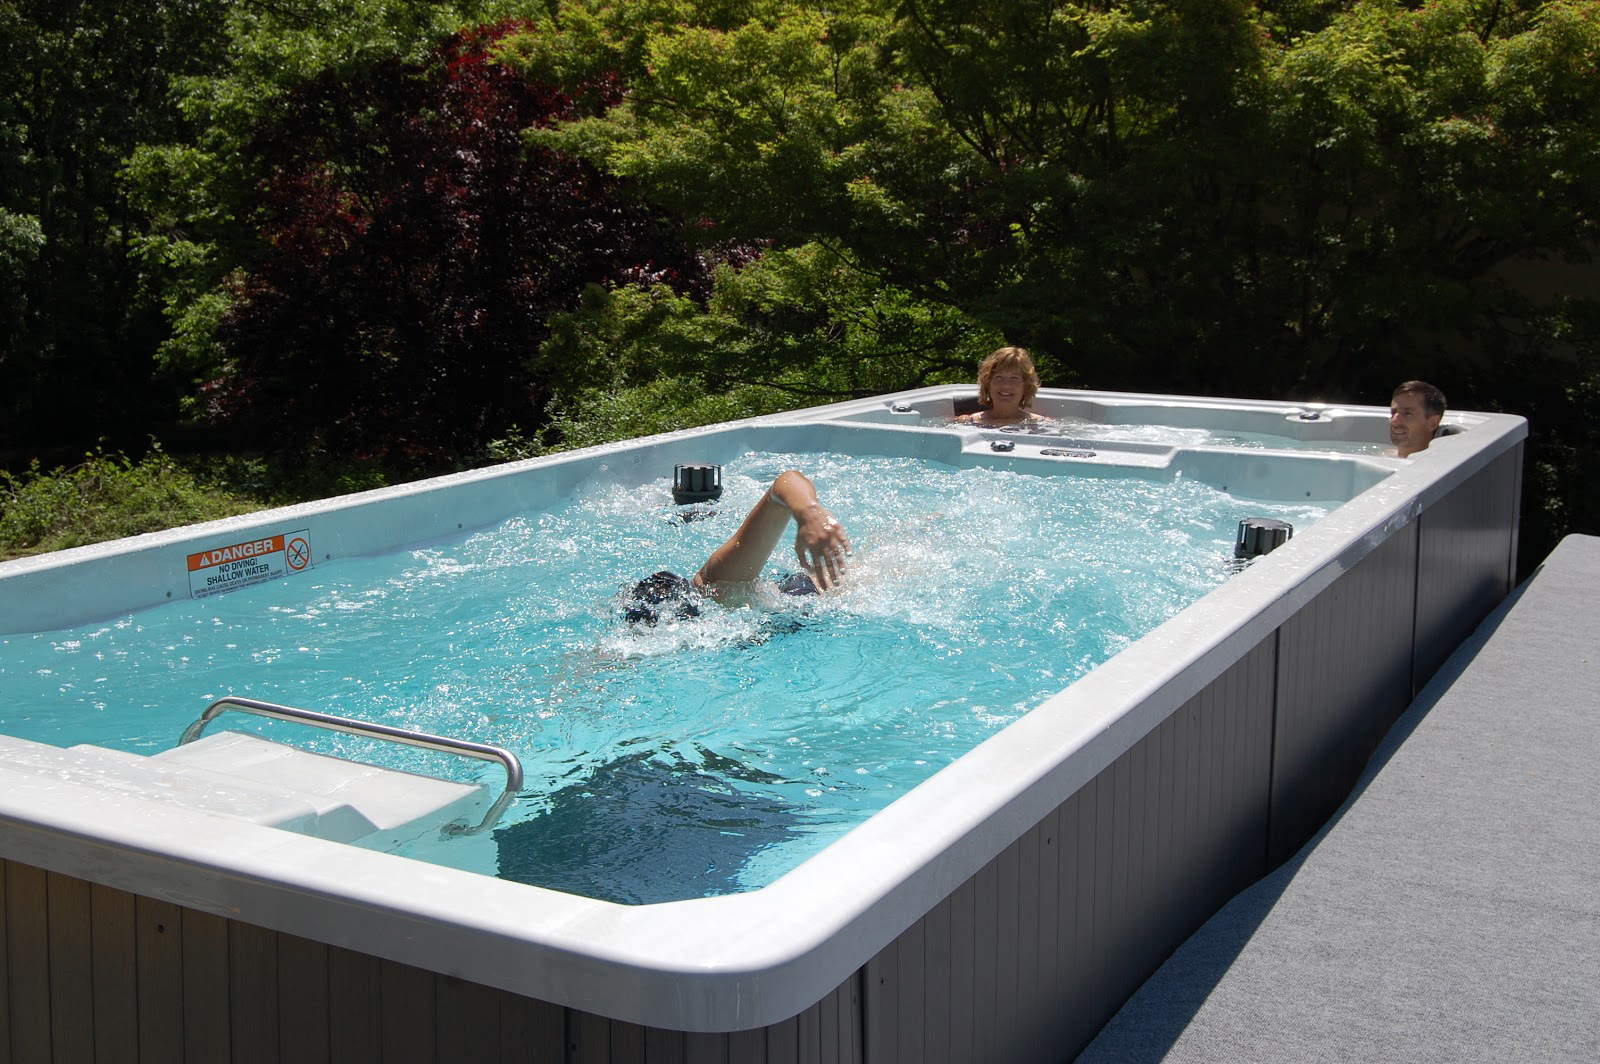 Blue hawaiian pools and spas in jackson tn - How much is an endless pool swim spa ...